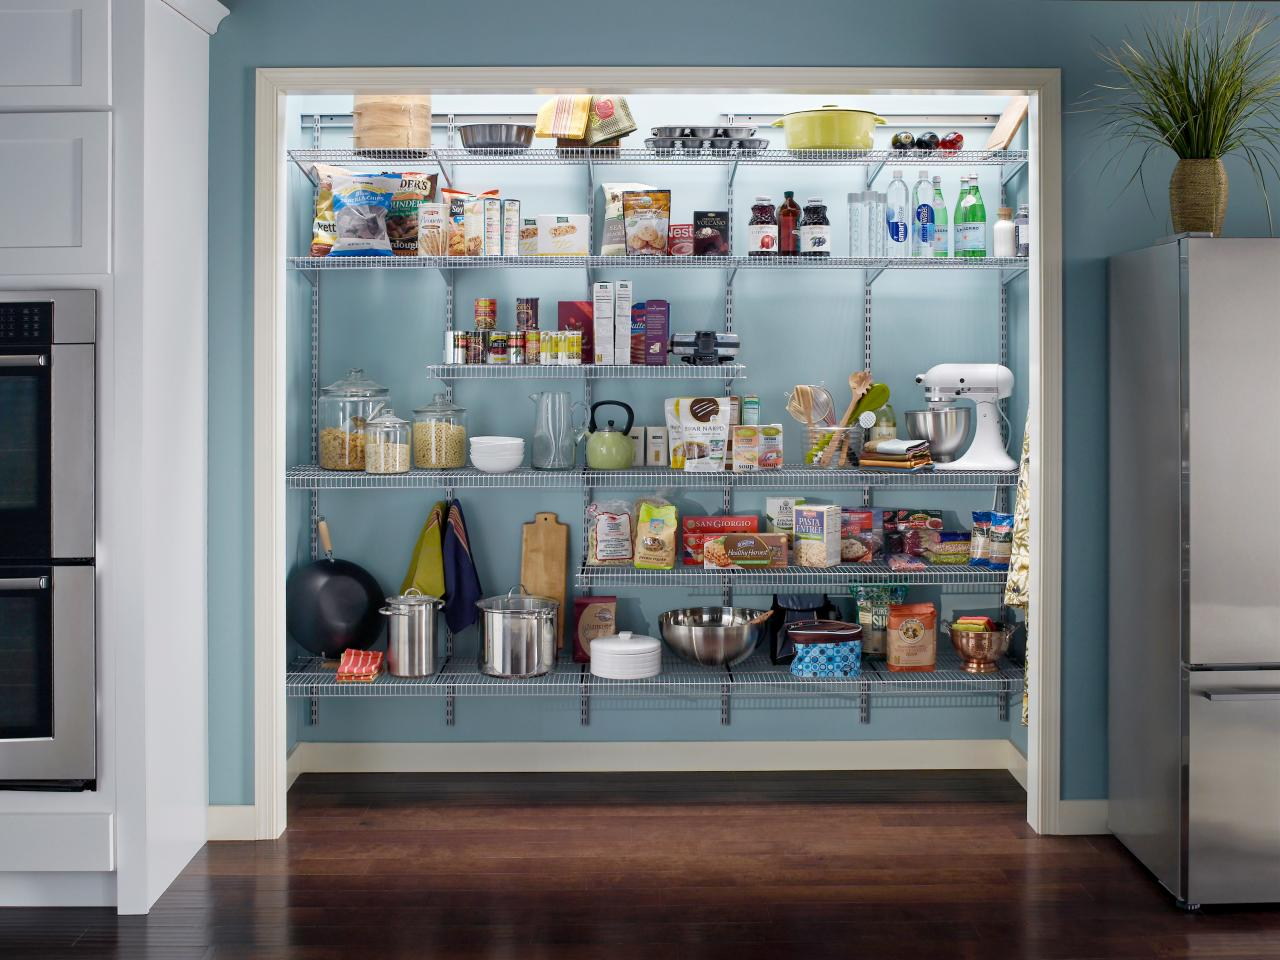 Adjustable wire shelving is an inexpensive product for customizing your pantry space.